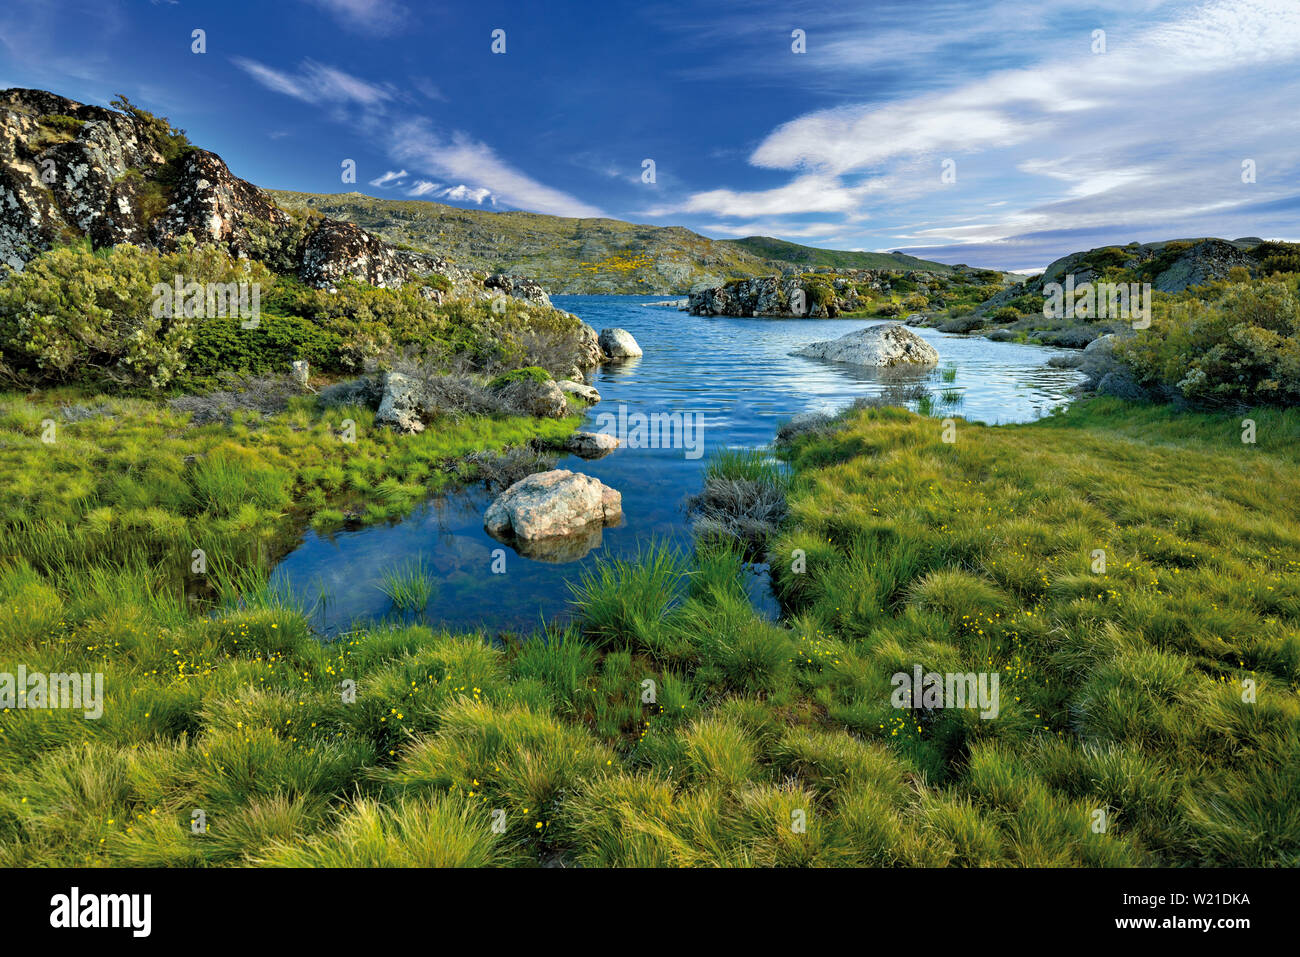 Green mountain landscape with lake and granite rocks - Stock Image